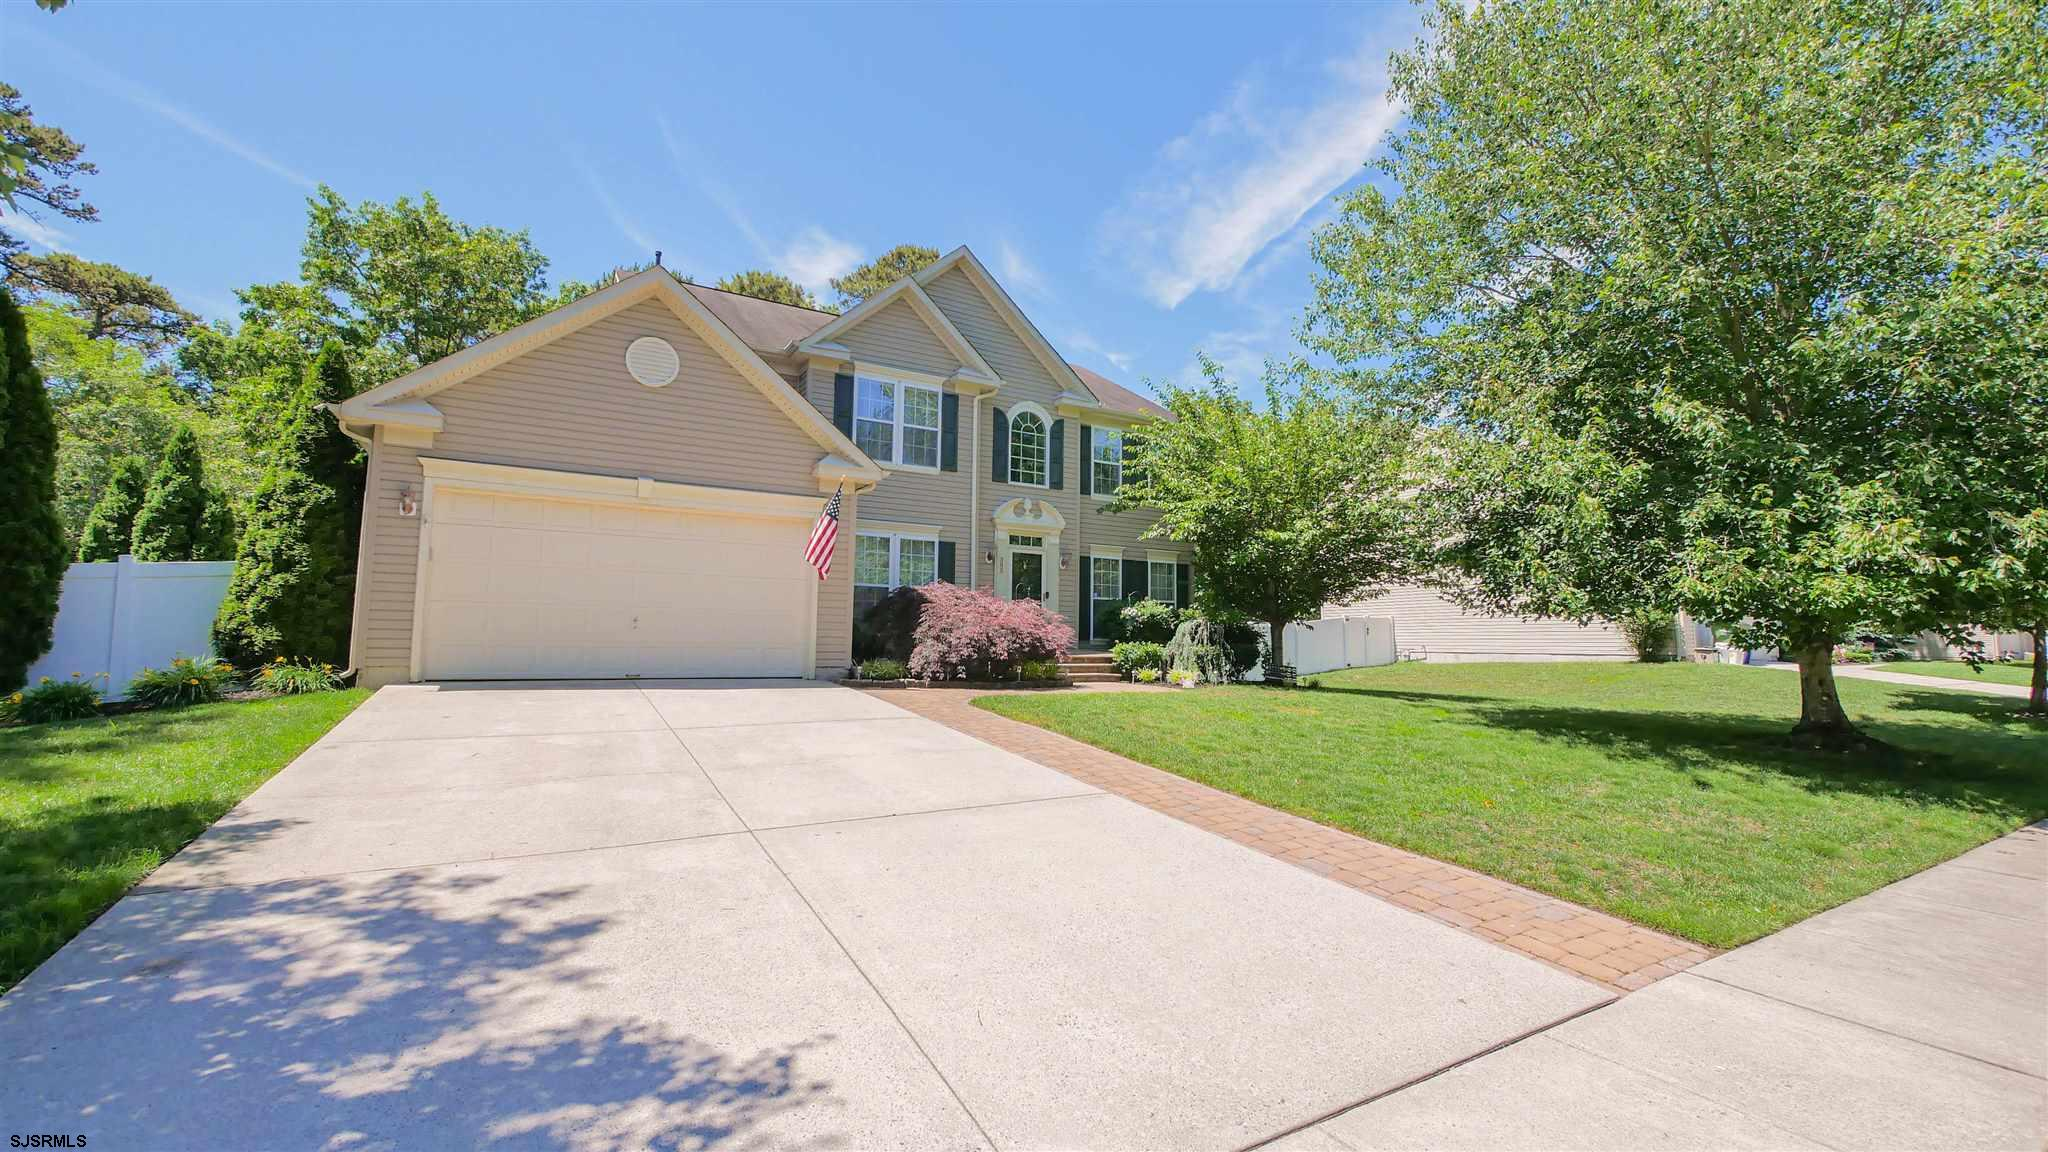 """Happiness and Memories will """"Blossom"""" in this Spacious 4 bedroom single family home in EHT with full"""